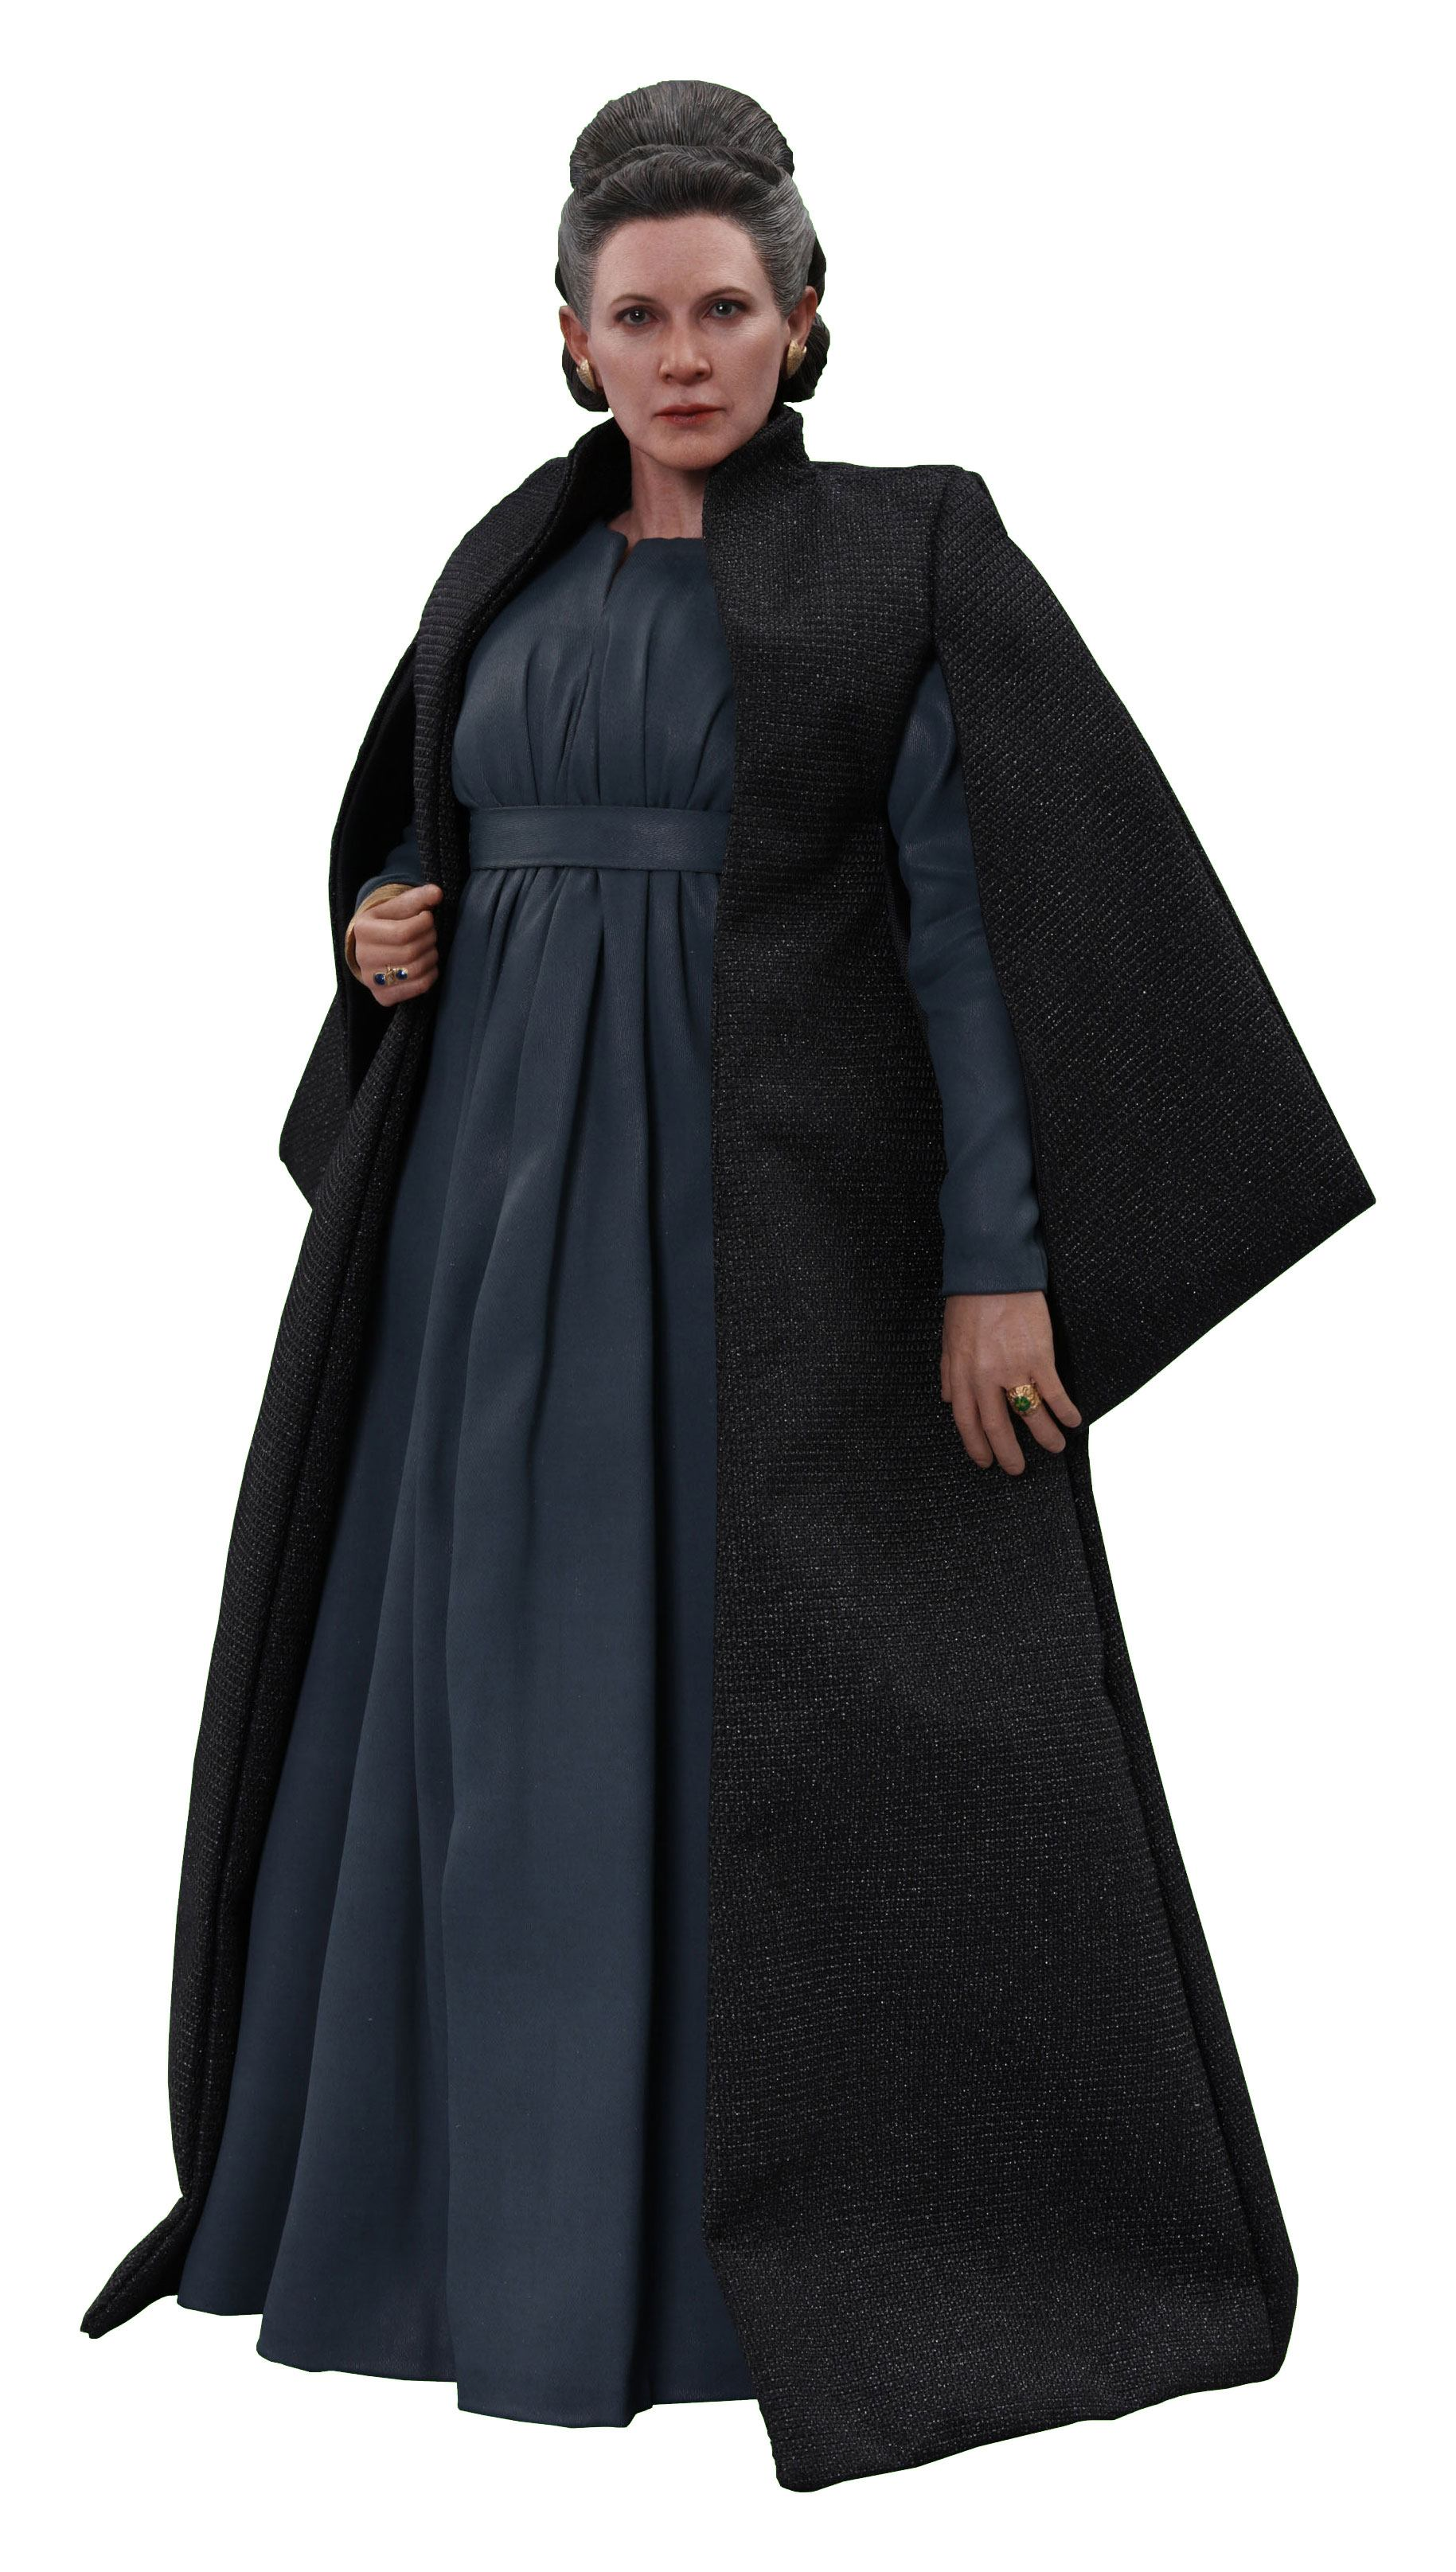 star wars episode viii movie masterpiece action figure 1 6 leia organa 28 cm animegami store. Black Bedroom Furniture Sets. Home Design Ideas